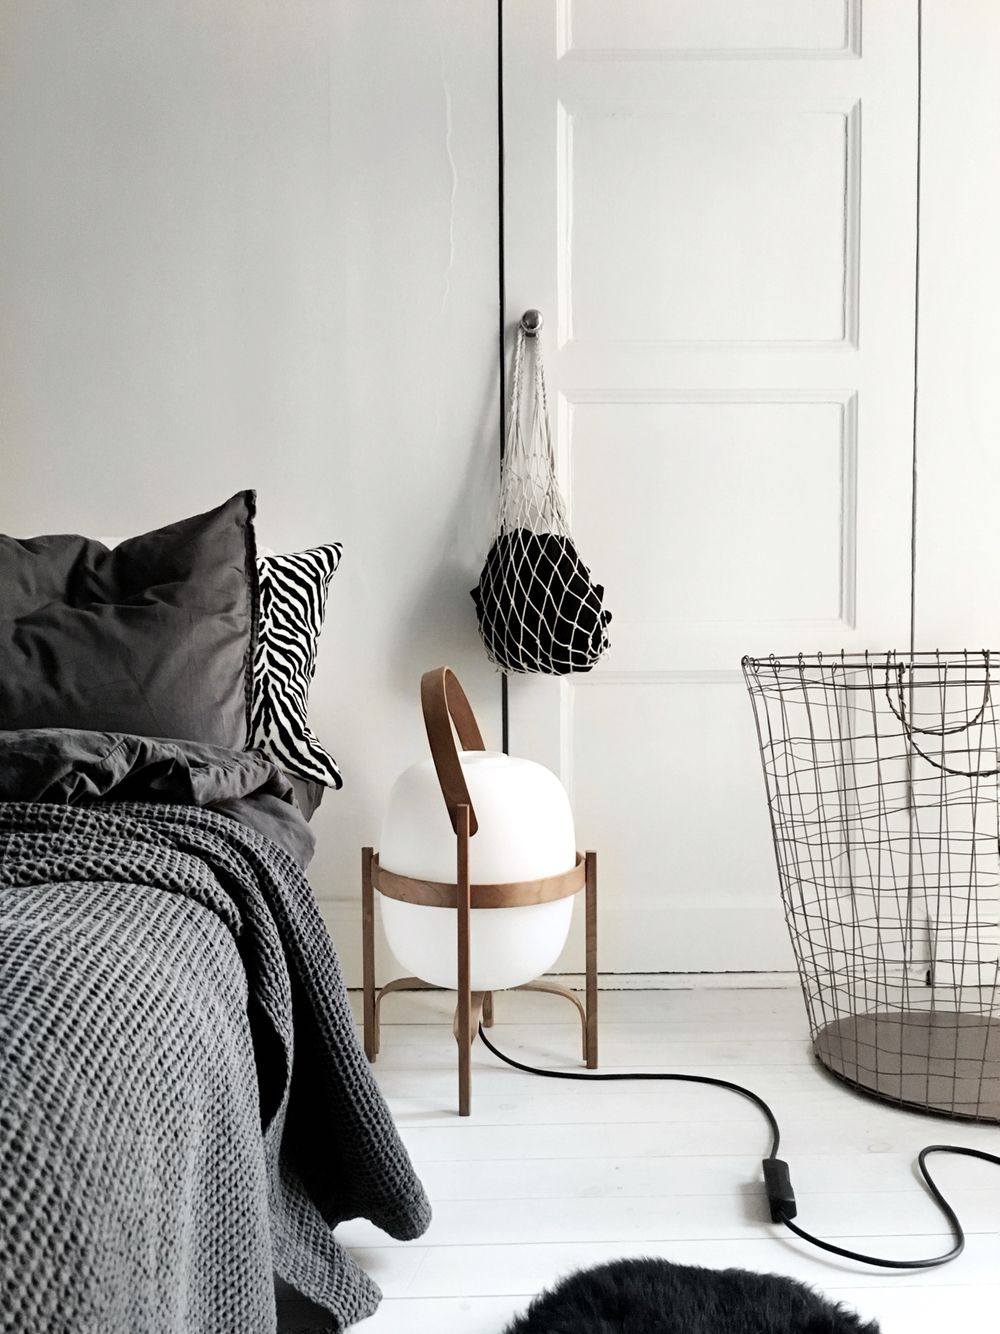 Cesta light by Santa Cole in the home of Therese Sennerholt. Looking ...